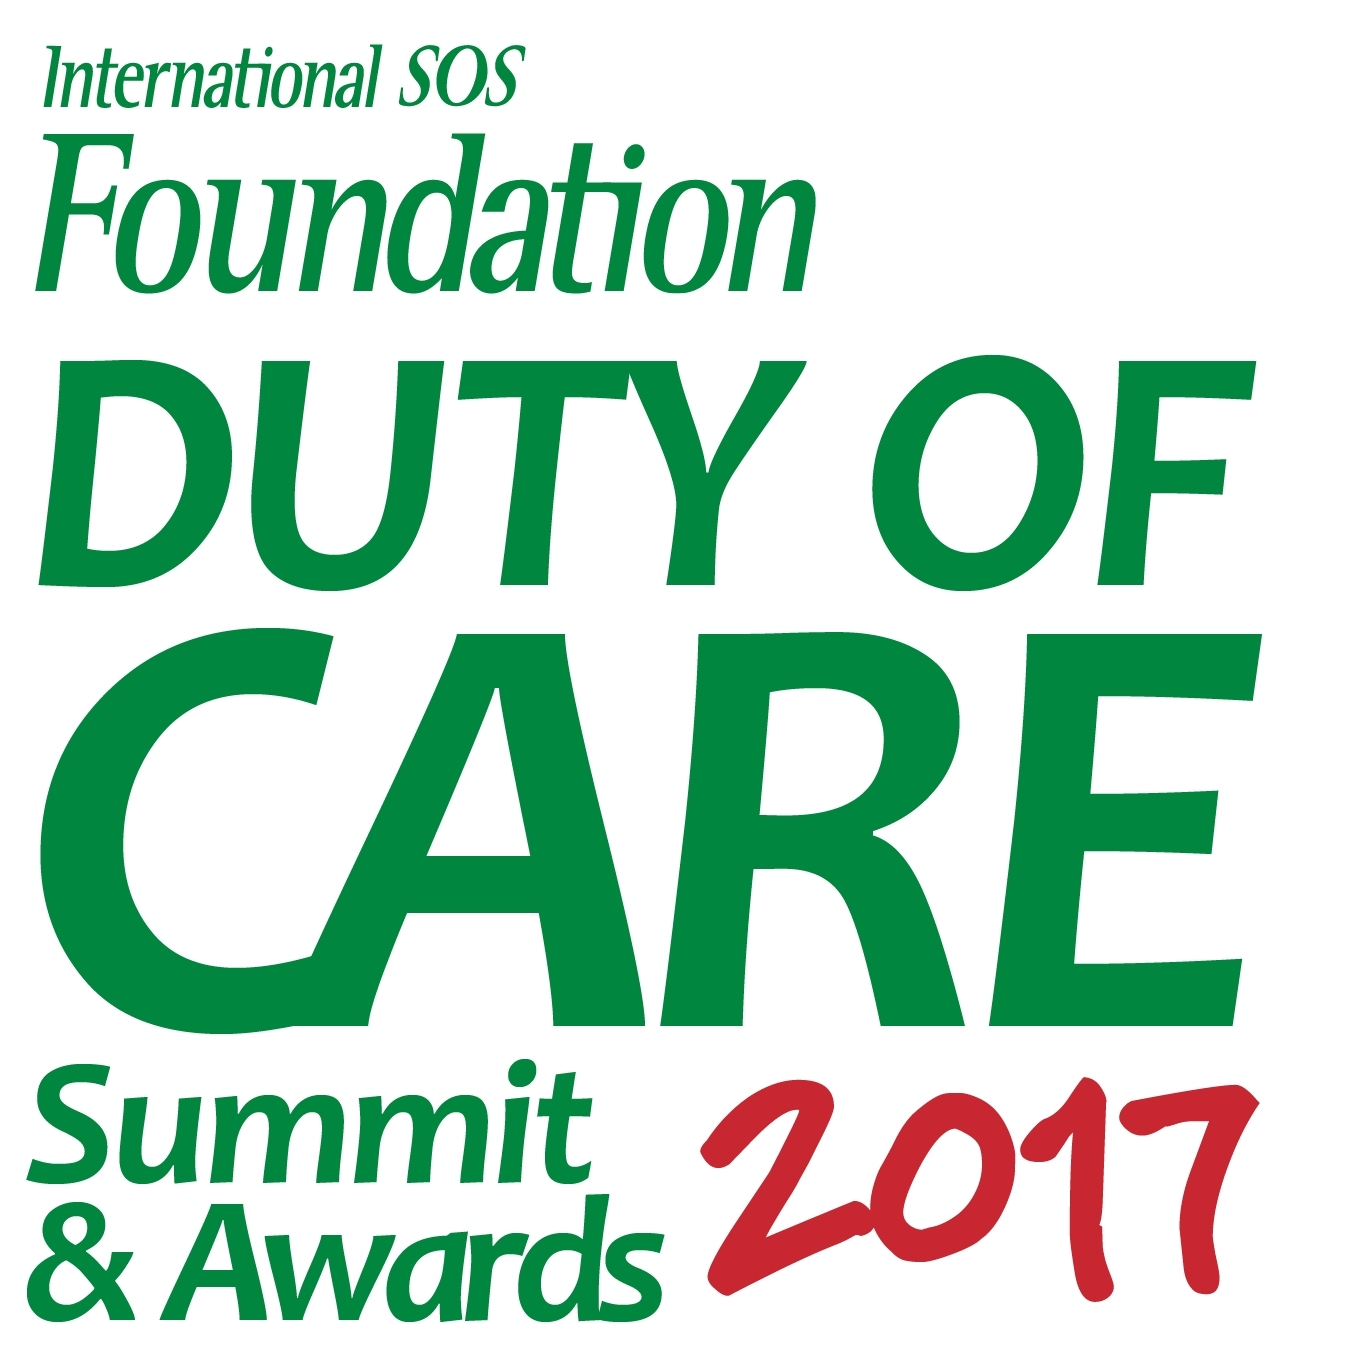 duty of care Duty of care is owed by an accountant in correctly preparing a company's accounts, by an auditor in confirming an company's financial statements correctly present its financial position by a director to shareholders in husbanding the enterprise's resources by a manufacturer to consumers for the safety of product and by every party to a contract to the other contracting parties.